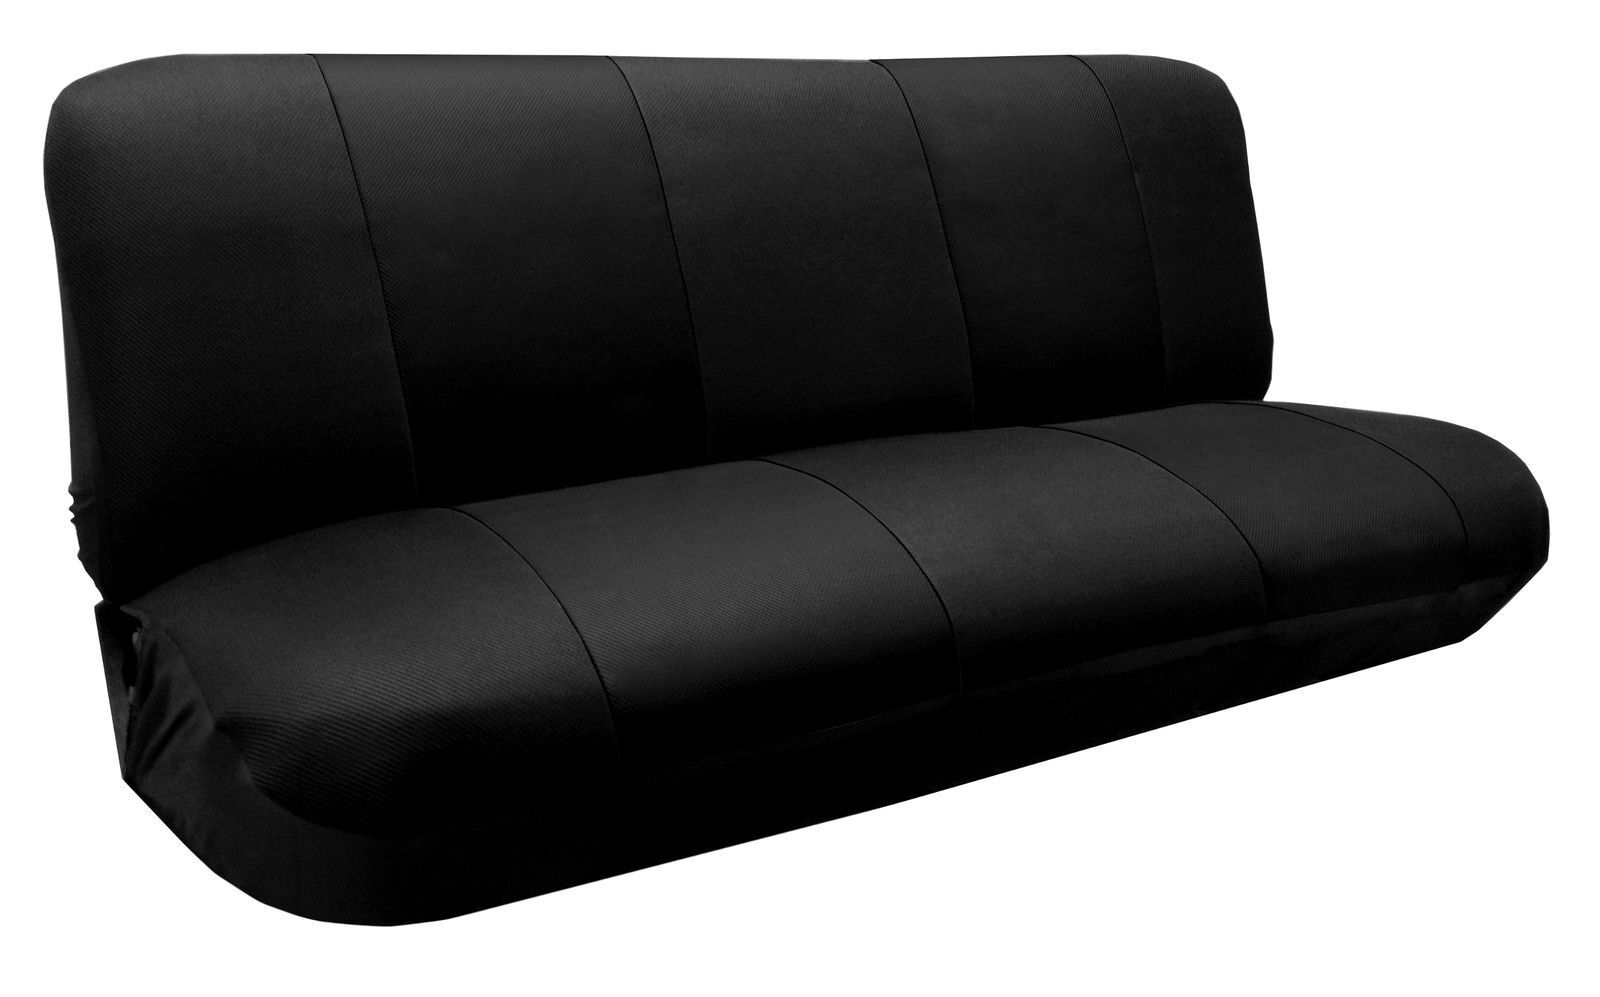 Vehicle Bench Seat ~ Mesh knit polyester solid black seat cover full size bench